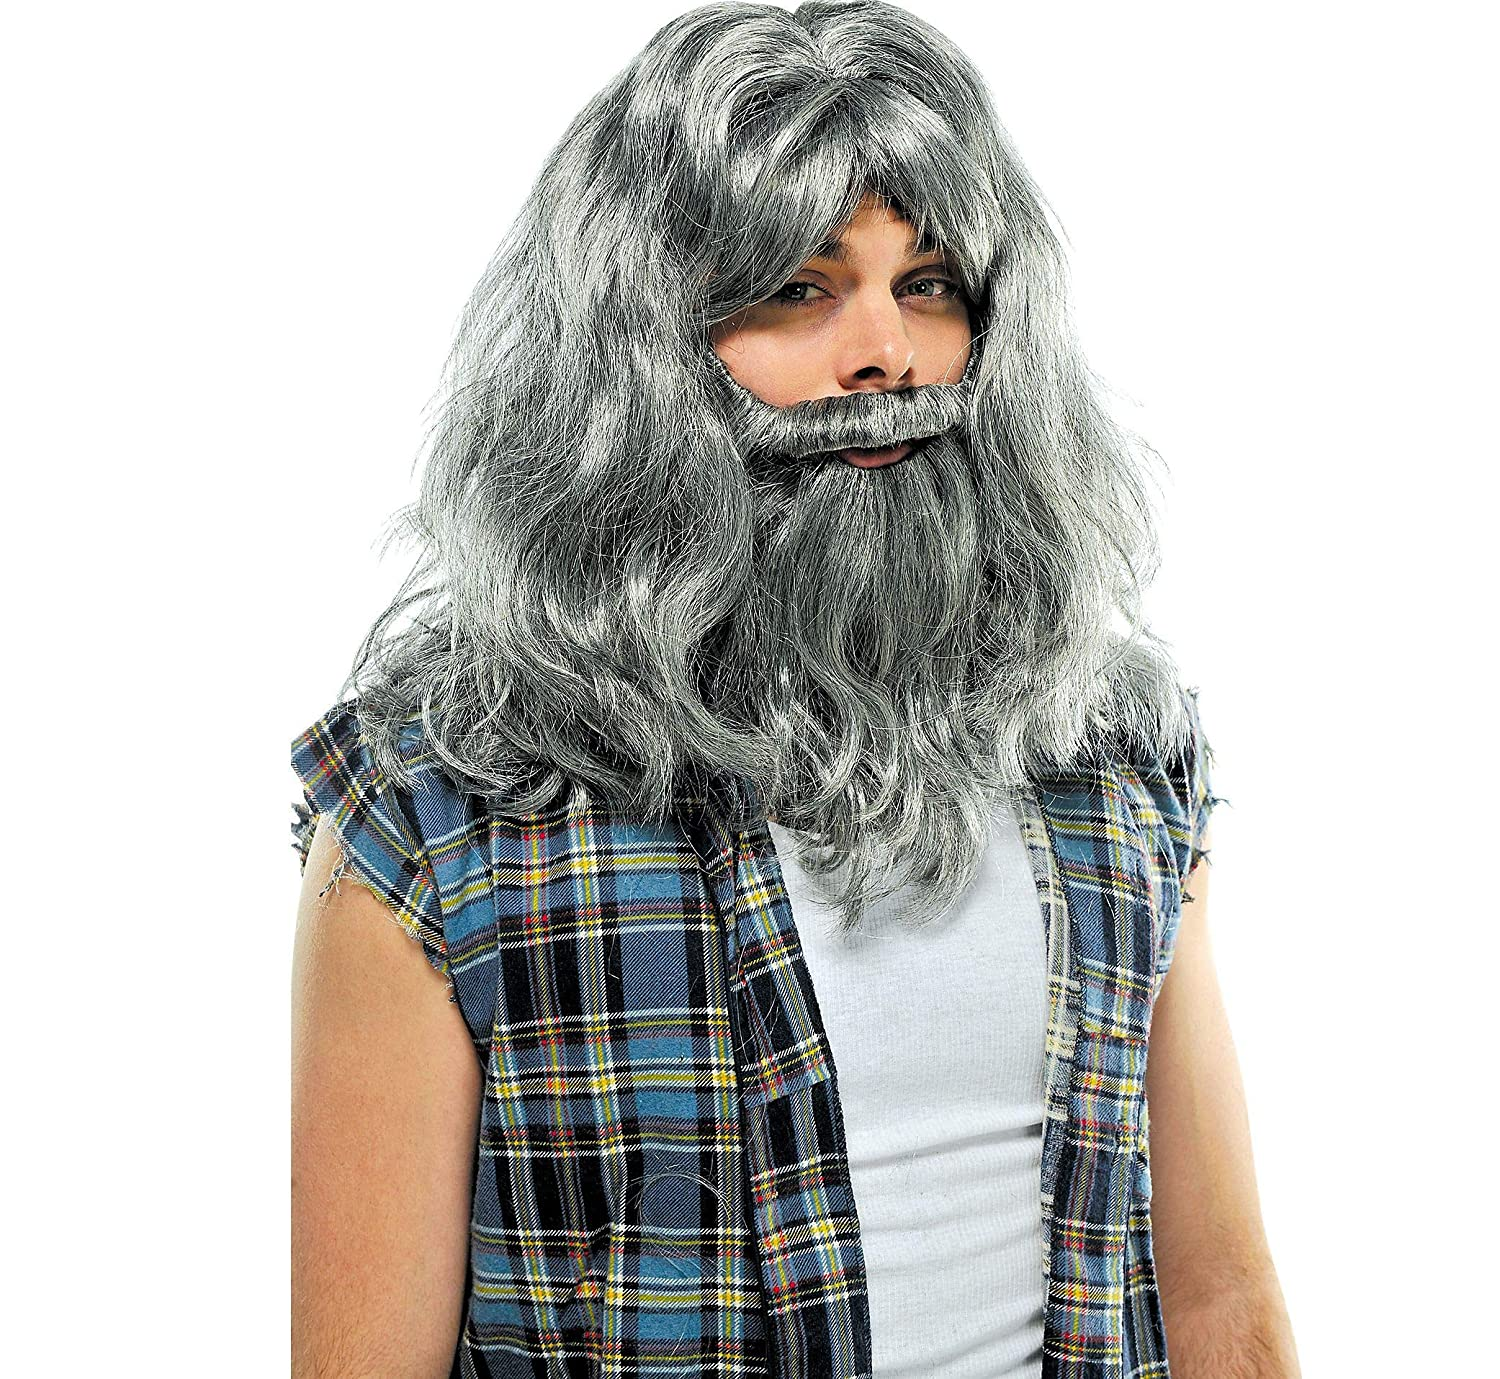 a520e45acd7 Amazon.com  AMSCAN Silver Old Man Wig and Beard Halloween Costume  Accessories